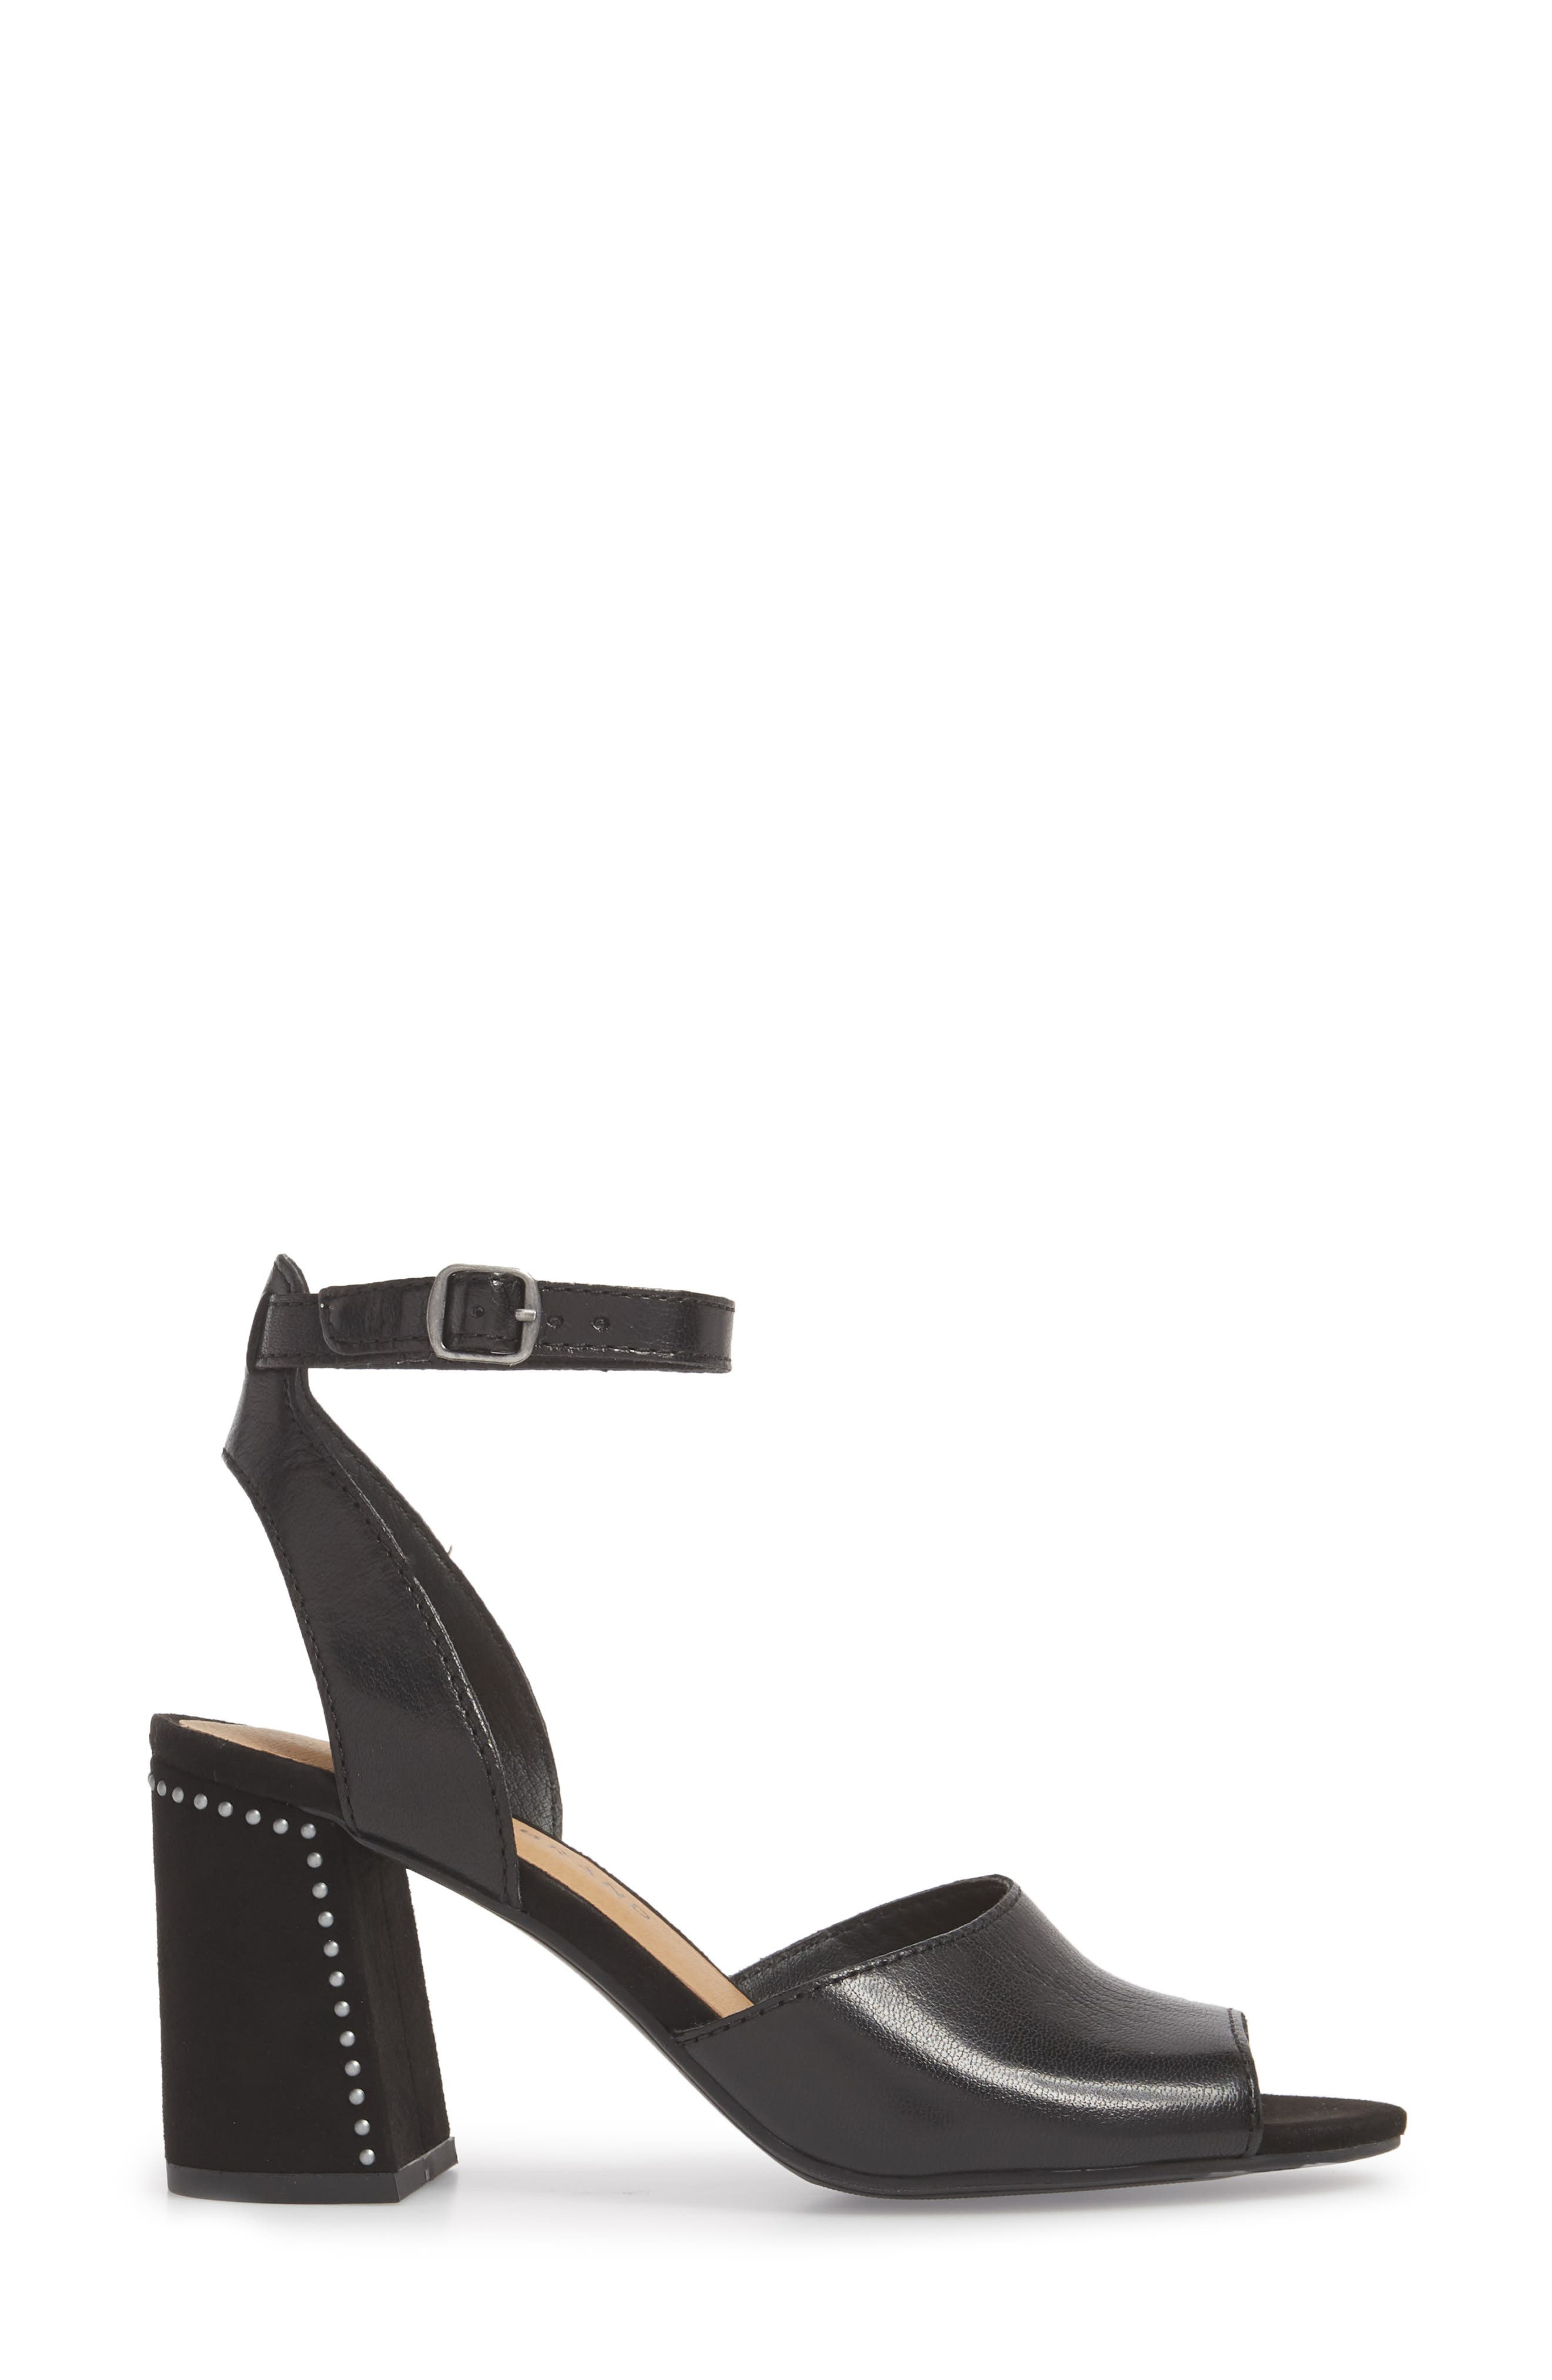 Verlena Sandal,                             Alternate thumbnail 3, color,                             Black Leather